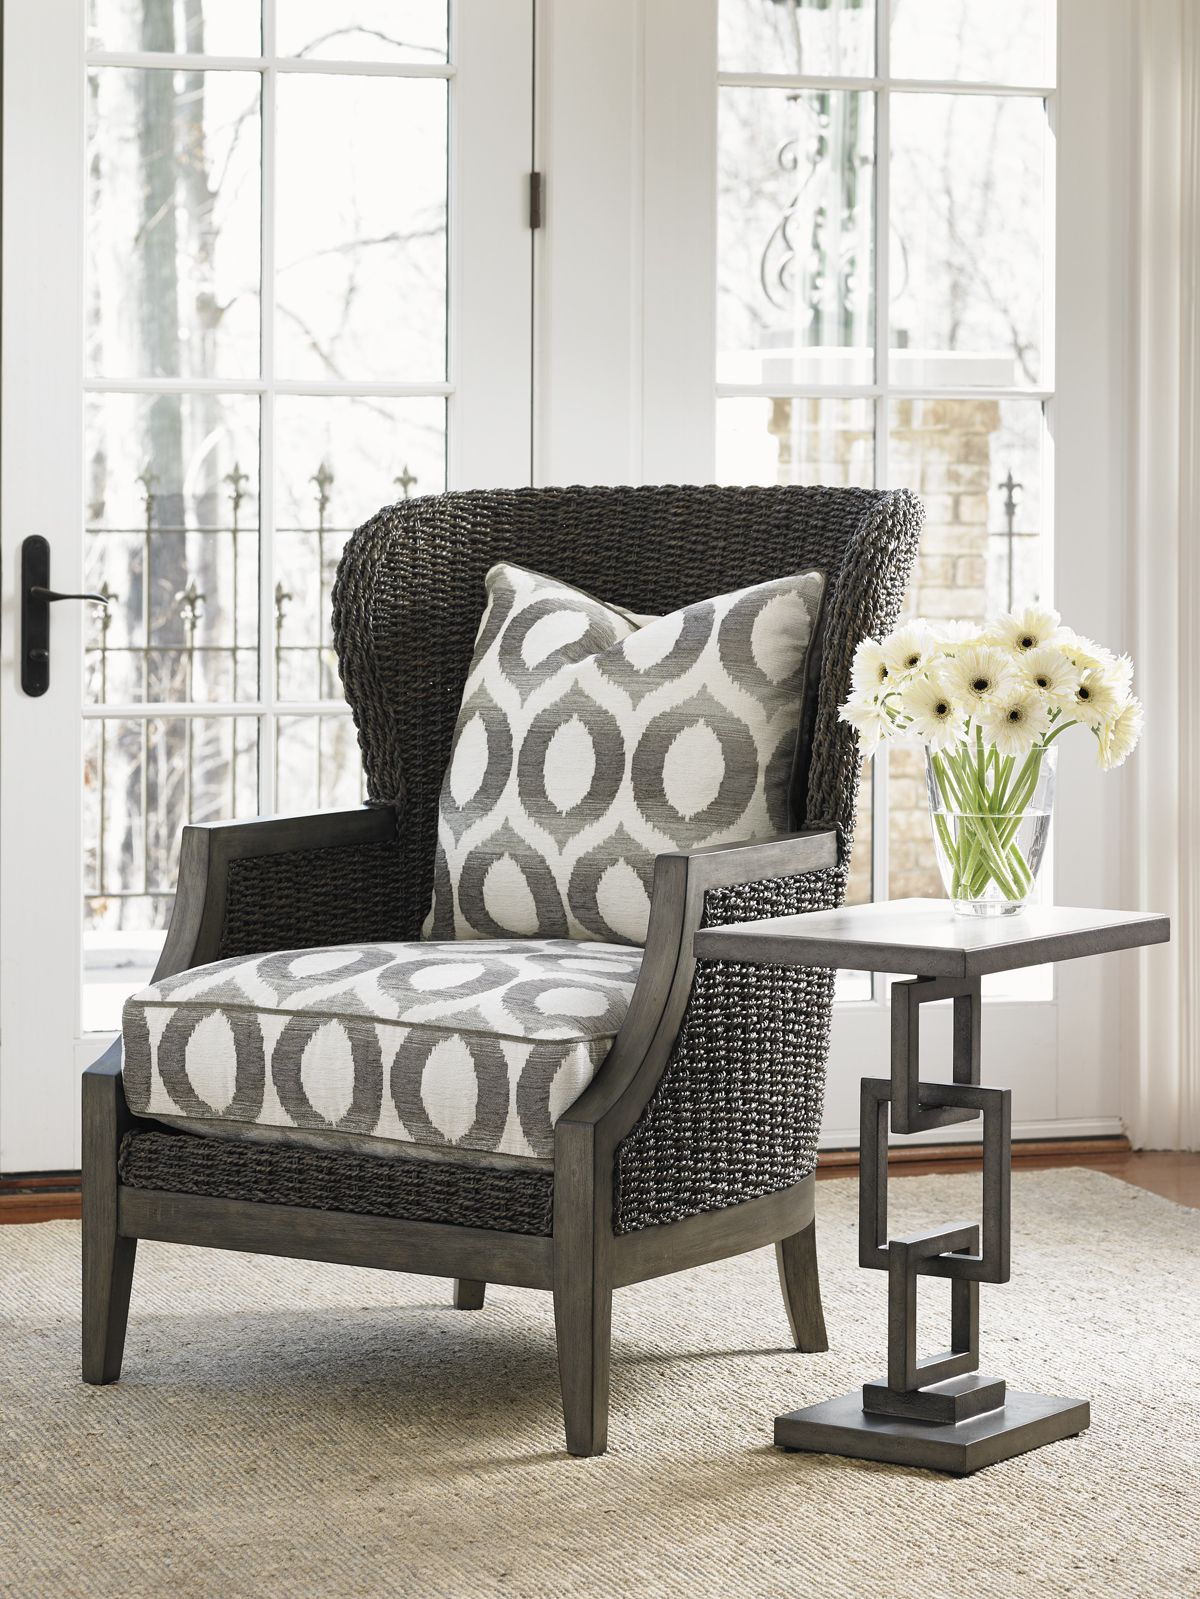 This Oyster Bay Seaford Chair By Lexington Home Brands Uses Woven